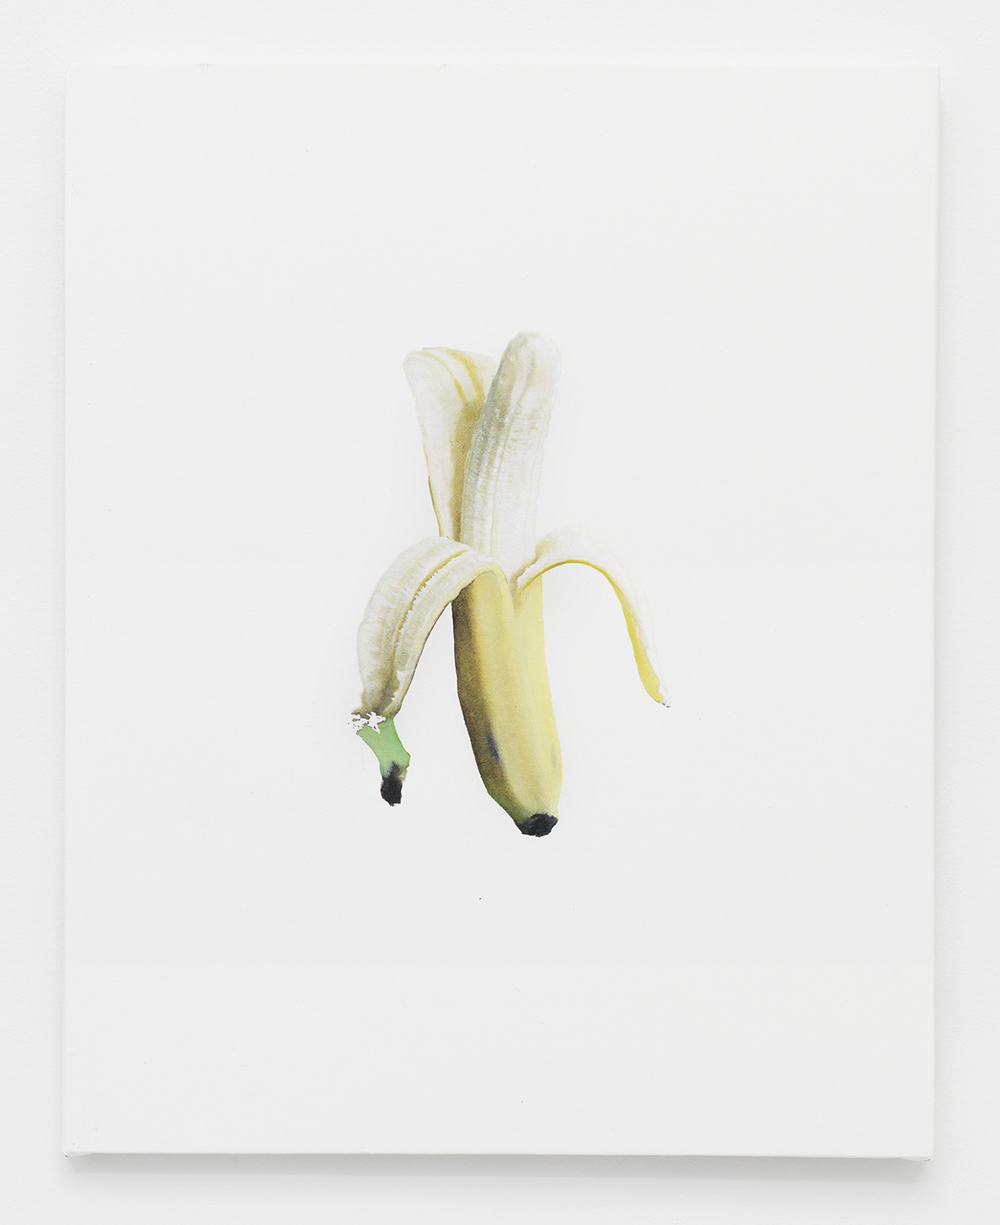 Banana Jpeg 5 2014  Oil and Epson Ultrachrome inkjet on Epson synthetic material  20 x 16 inches